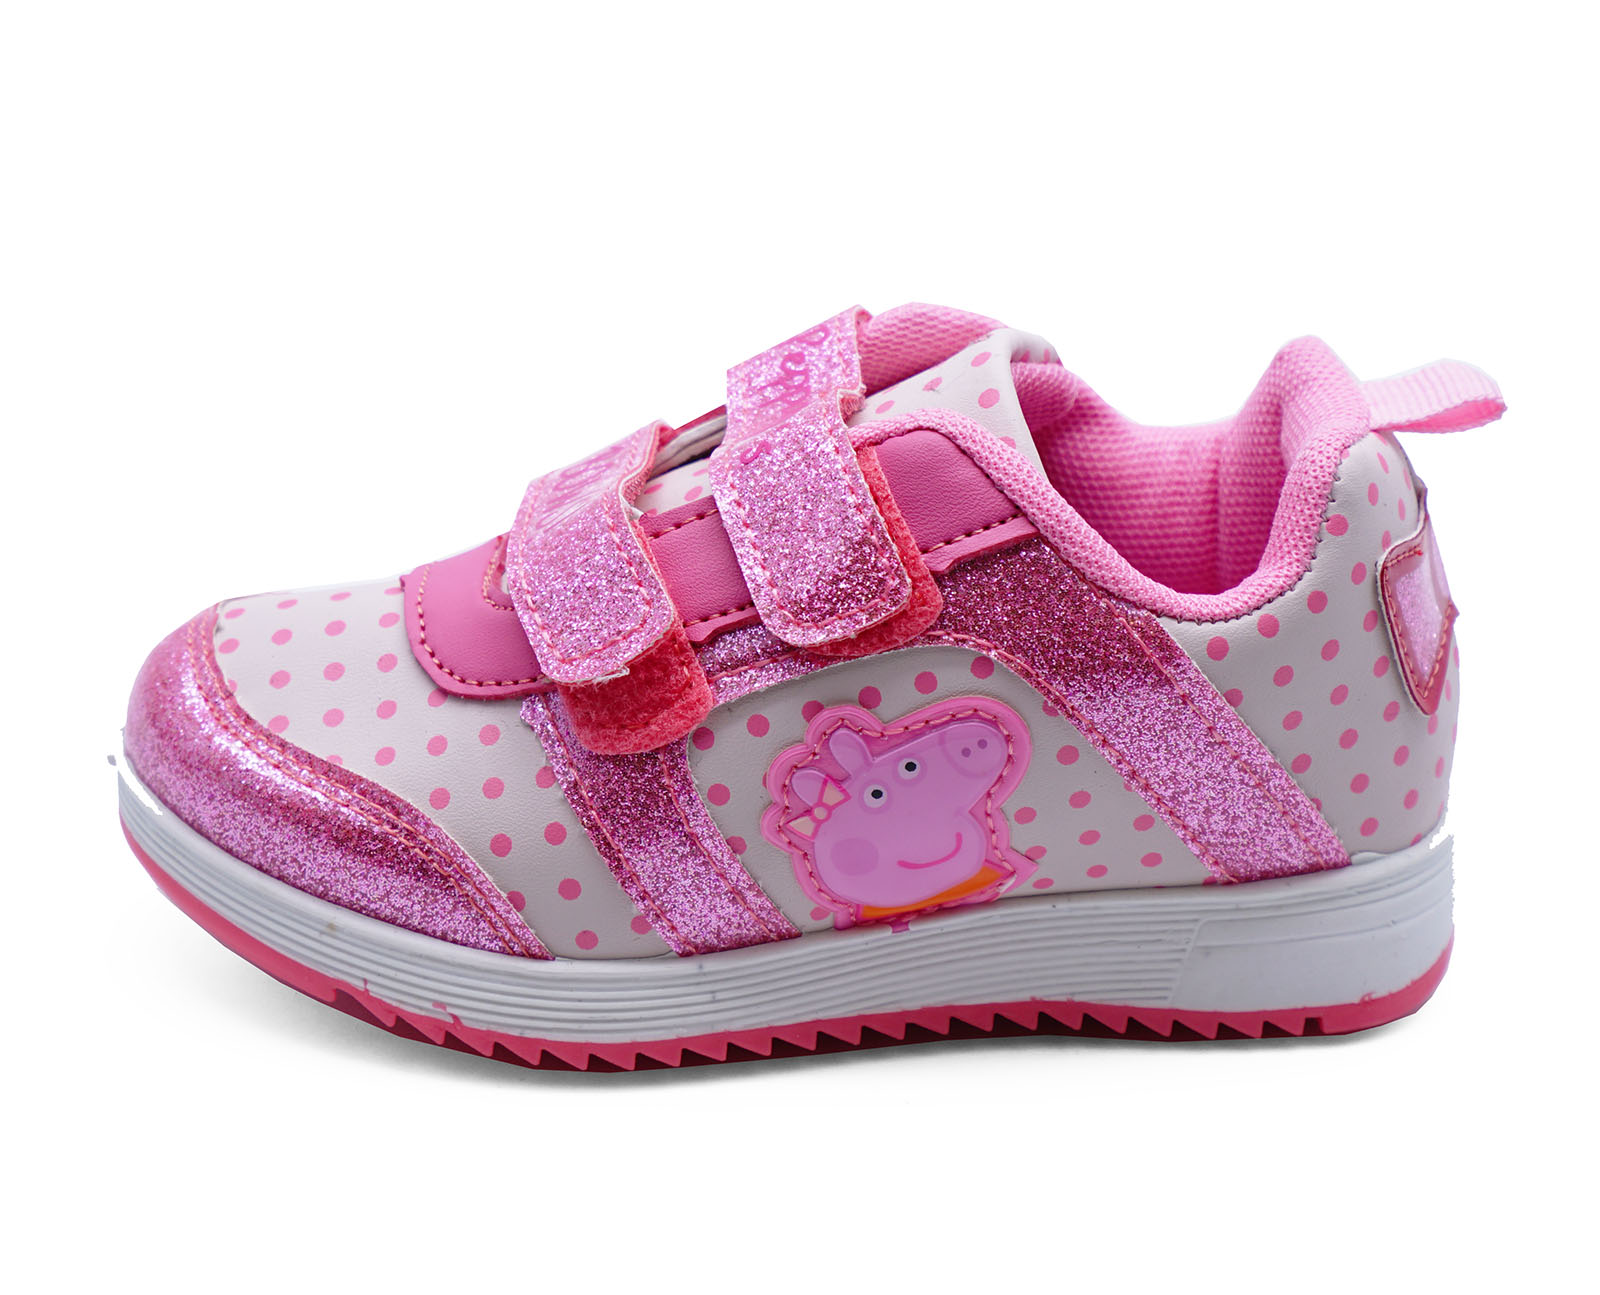 GIRLS PEPPA PIG KIDS CHILDRENS PINK TRAINERS PLIMSOLL PUMPS PRETTY SHOES UK 5-10